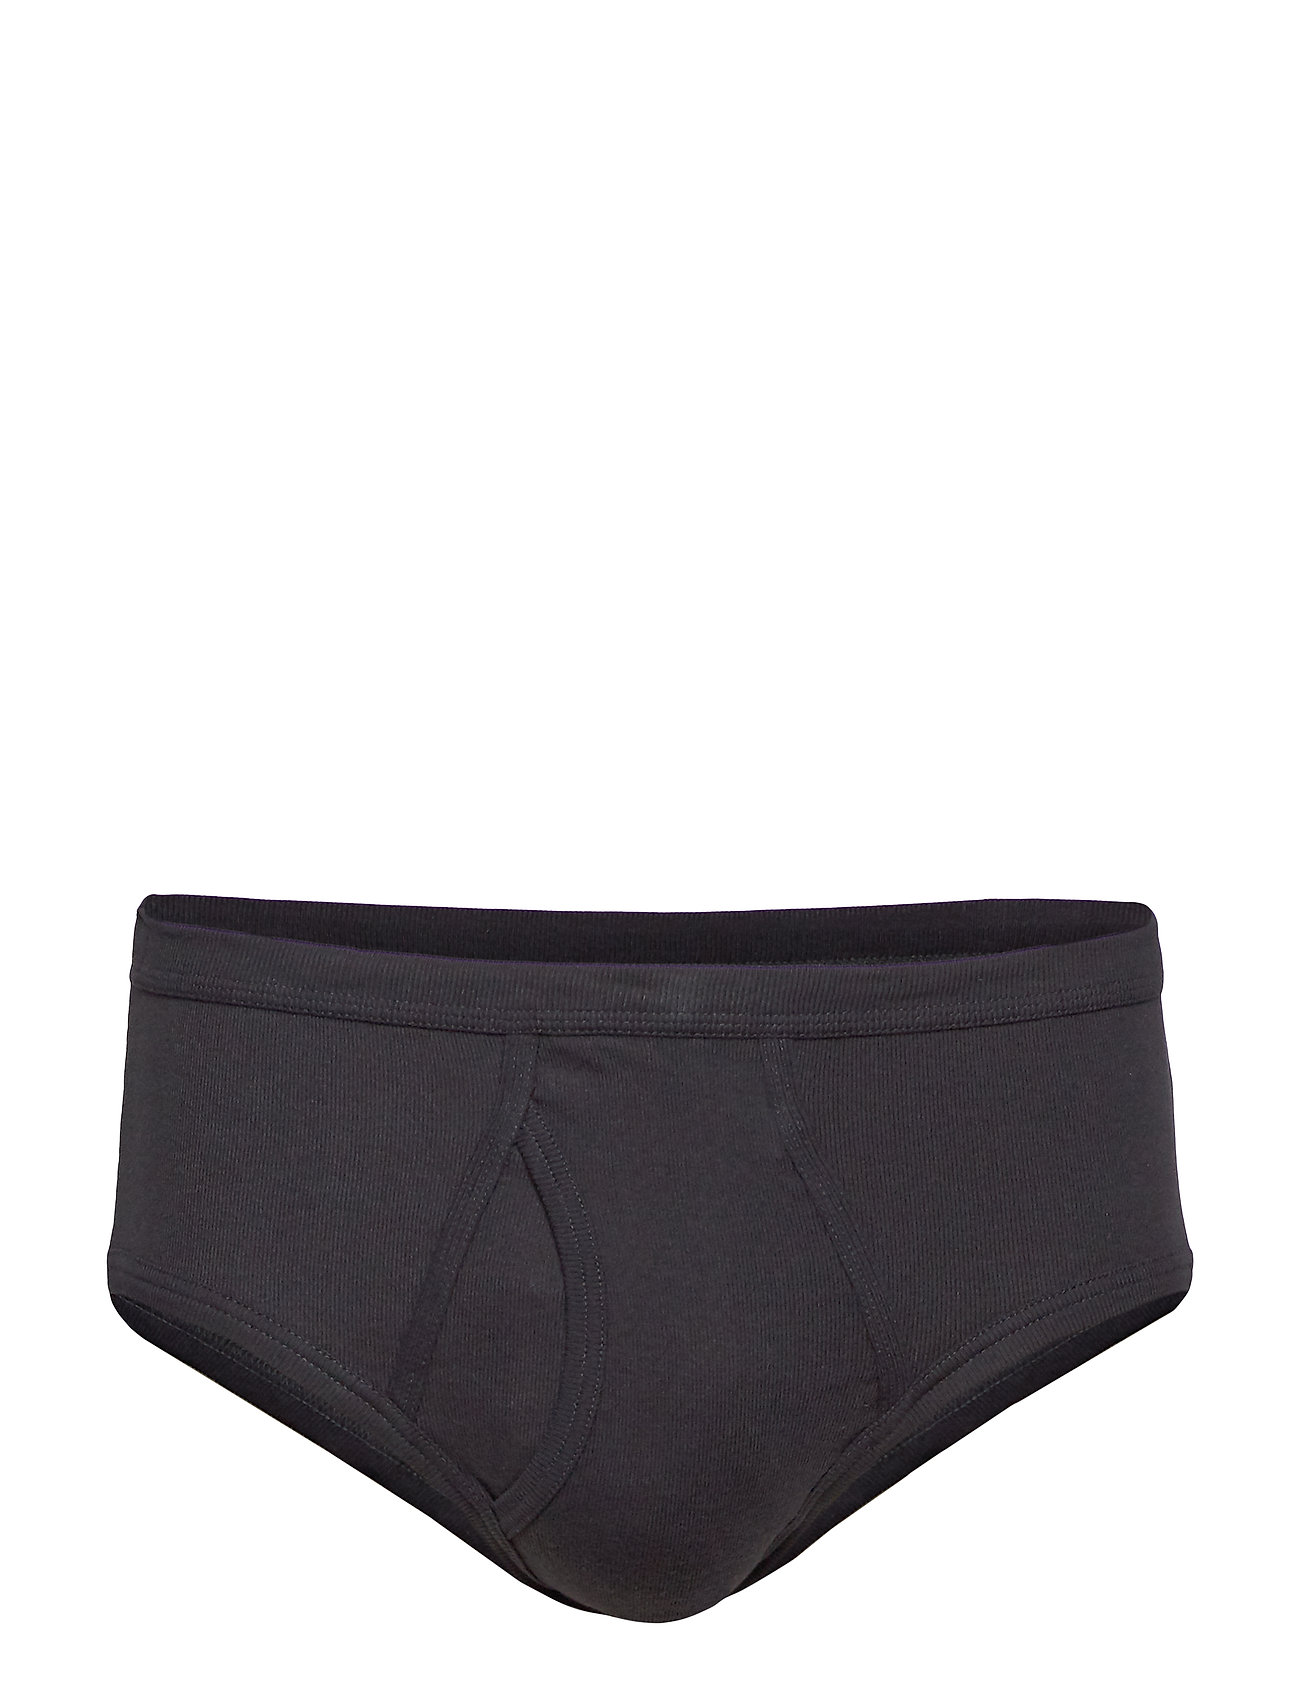 JBS Original briefs - BLACK